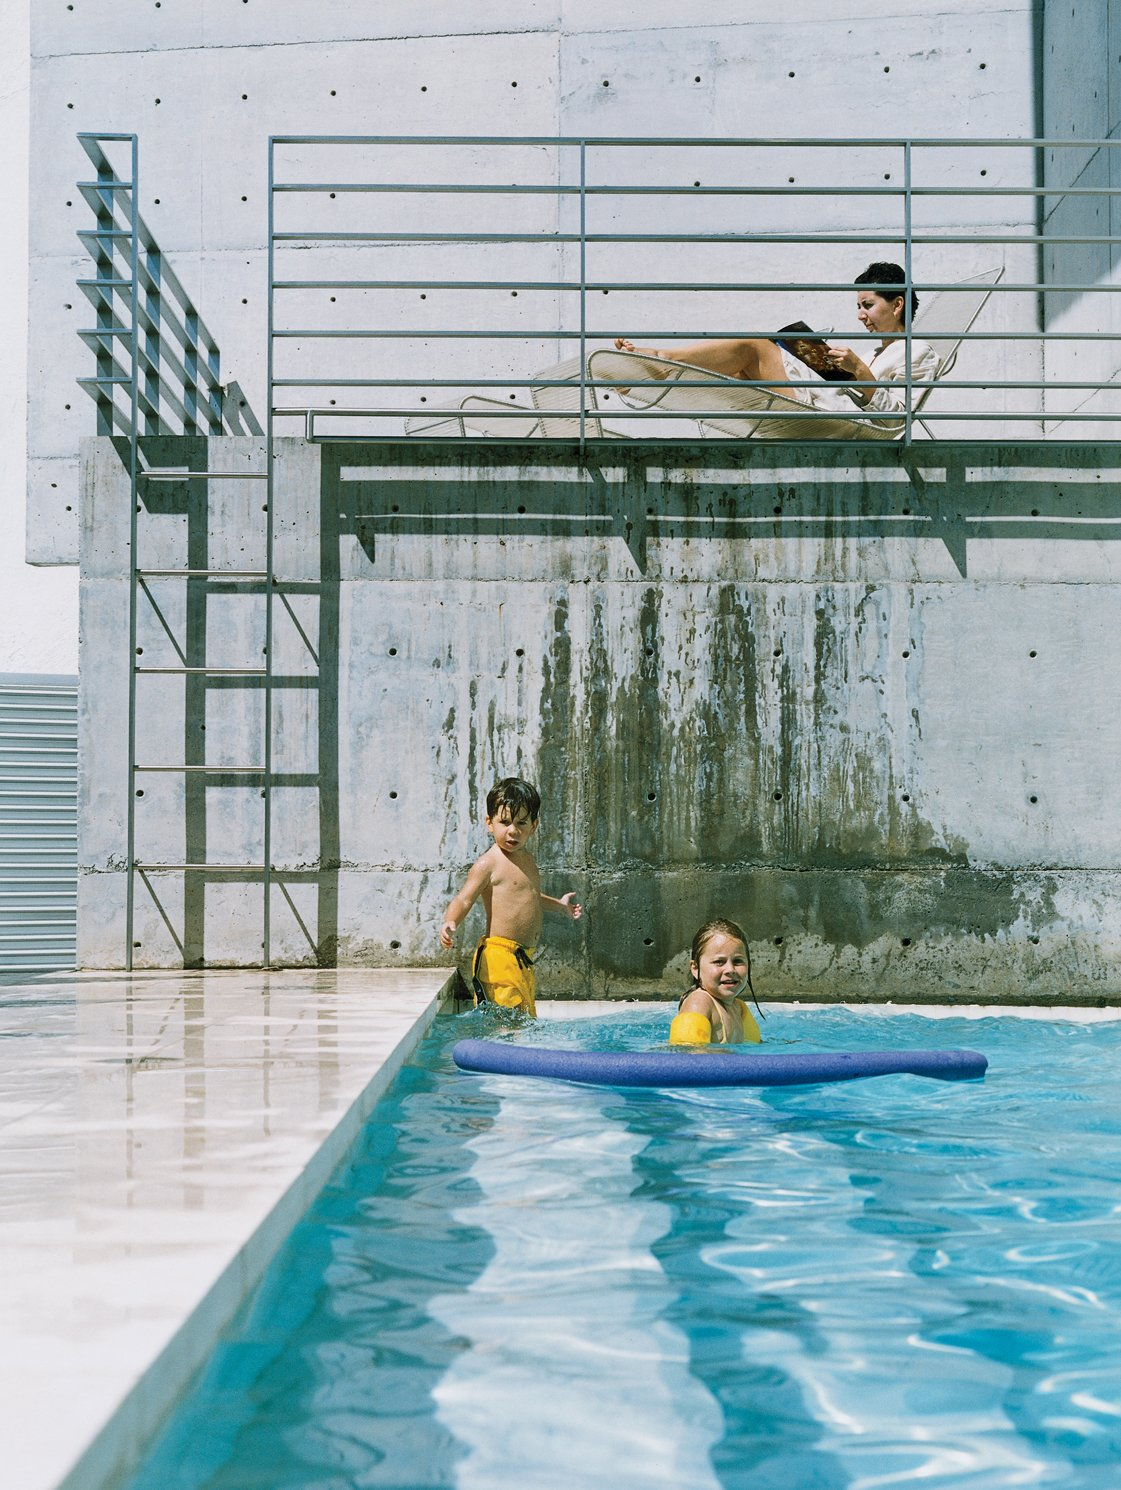 The kids and their mother relax in the pool area, their figures framed against a monochromatic background of steel and concrete.  Photo 5 of 10 in Reflections on a Lake